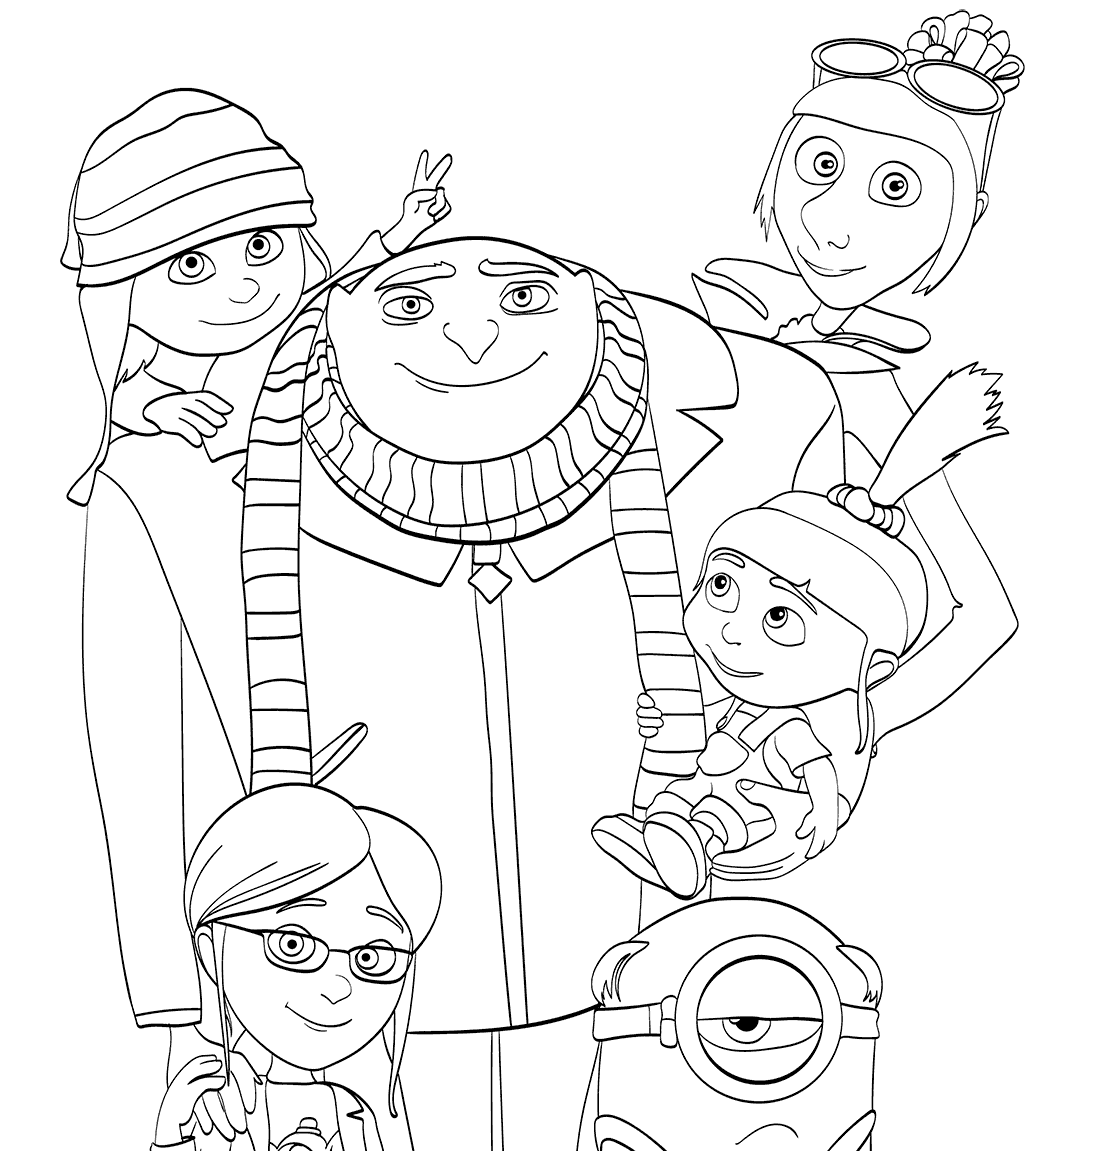 despicable me coloring pictures despicable me 3 coloring pages to download and print for free pictures despicable me coloring